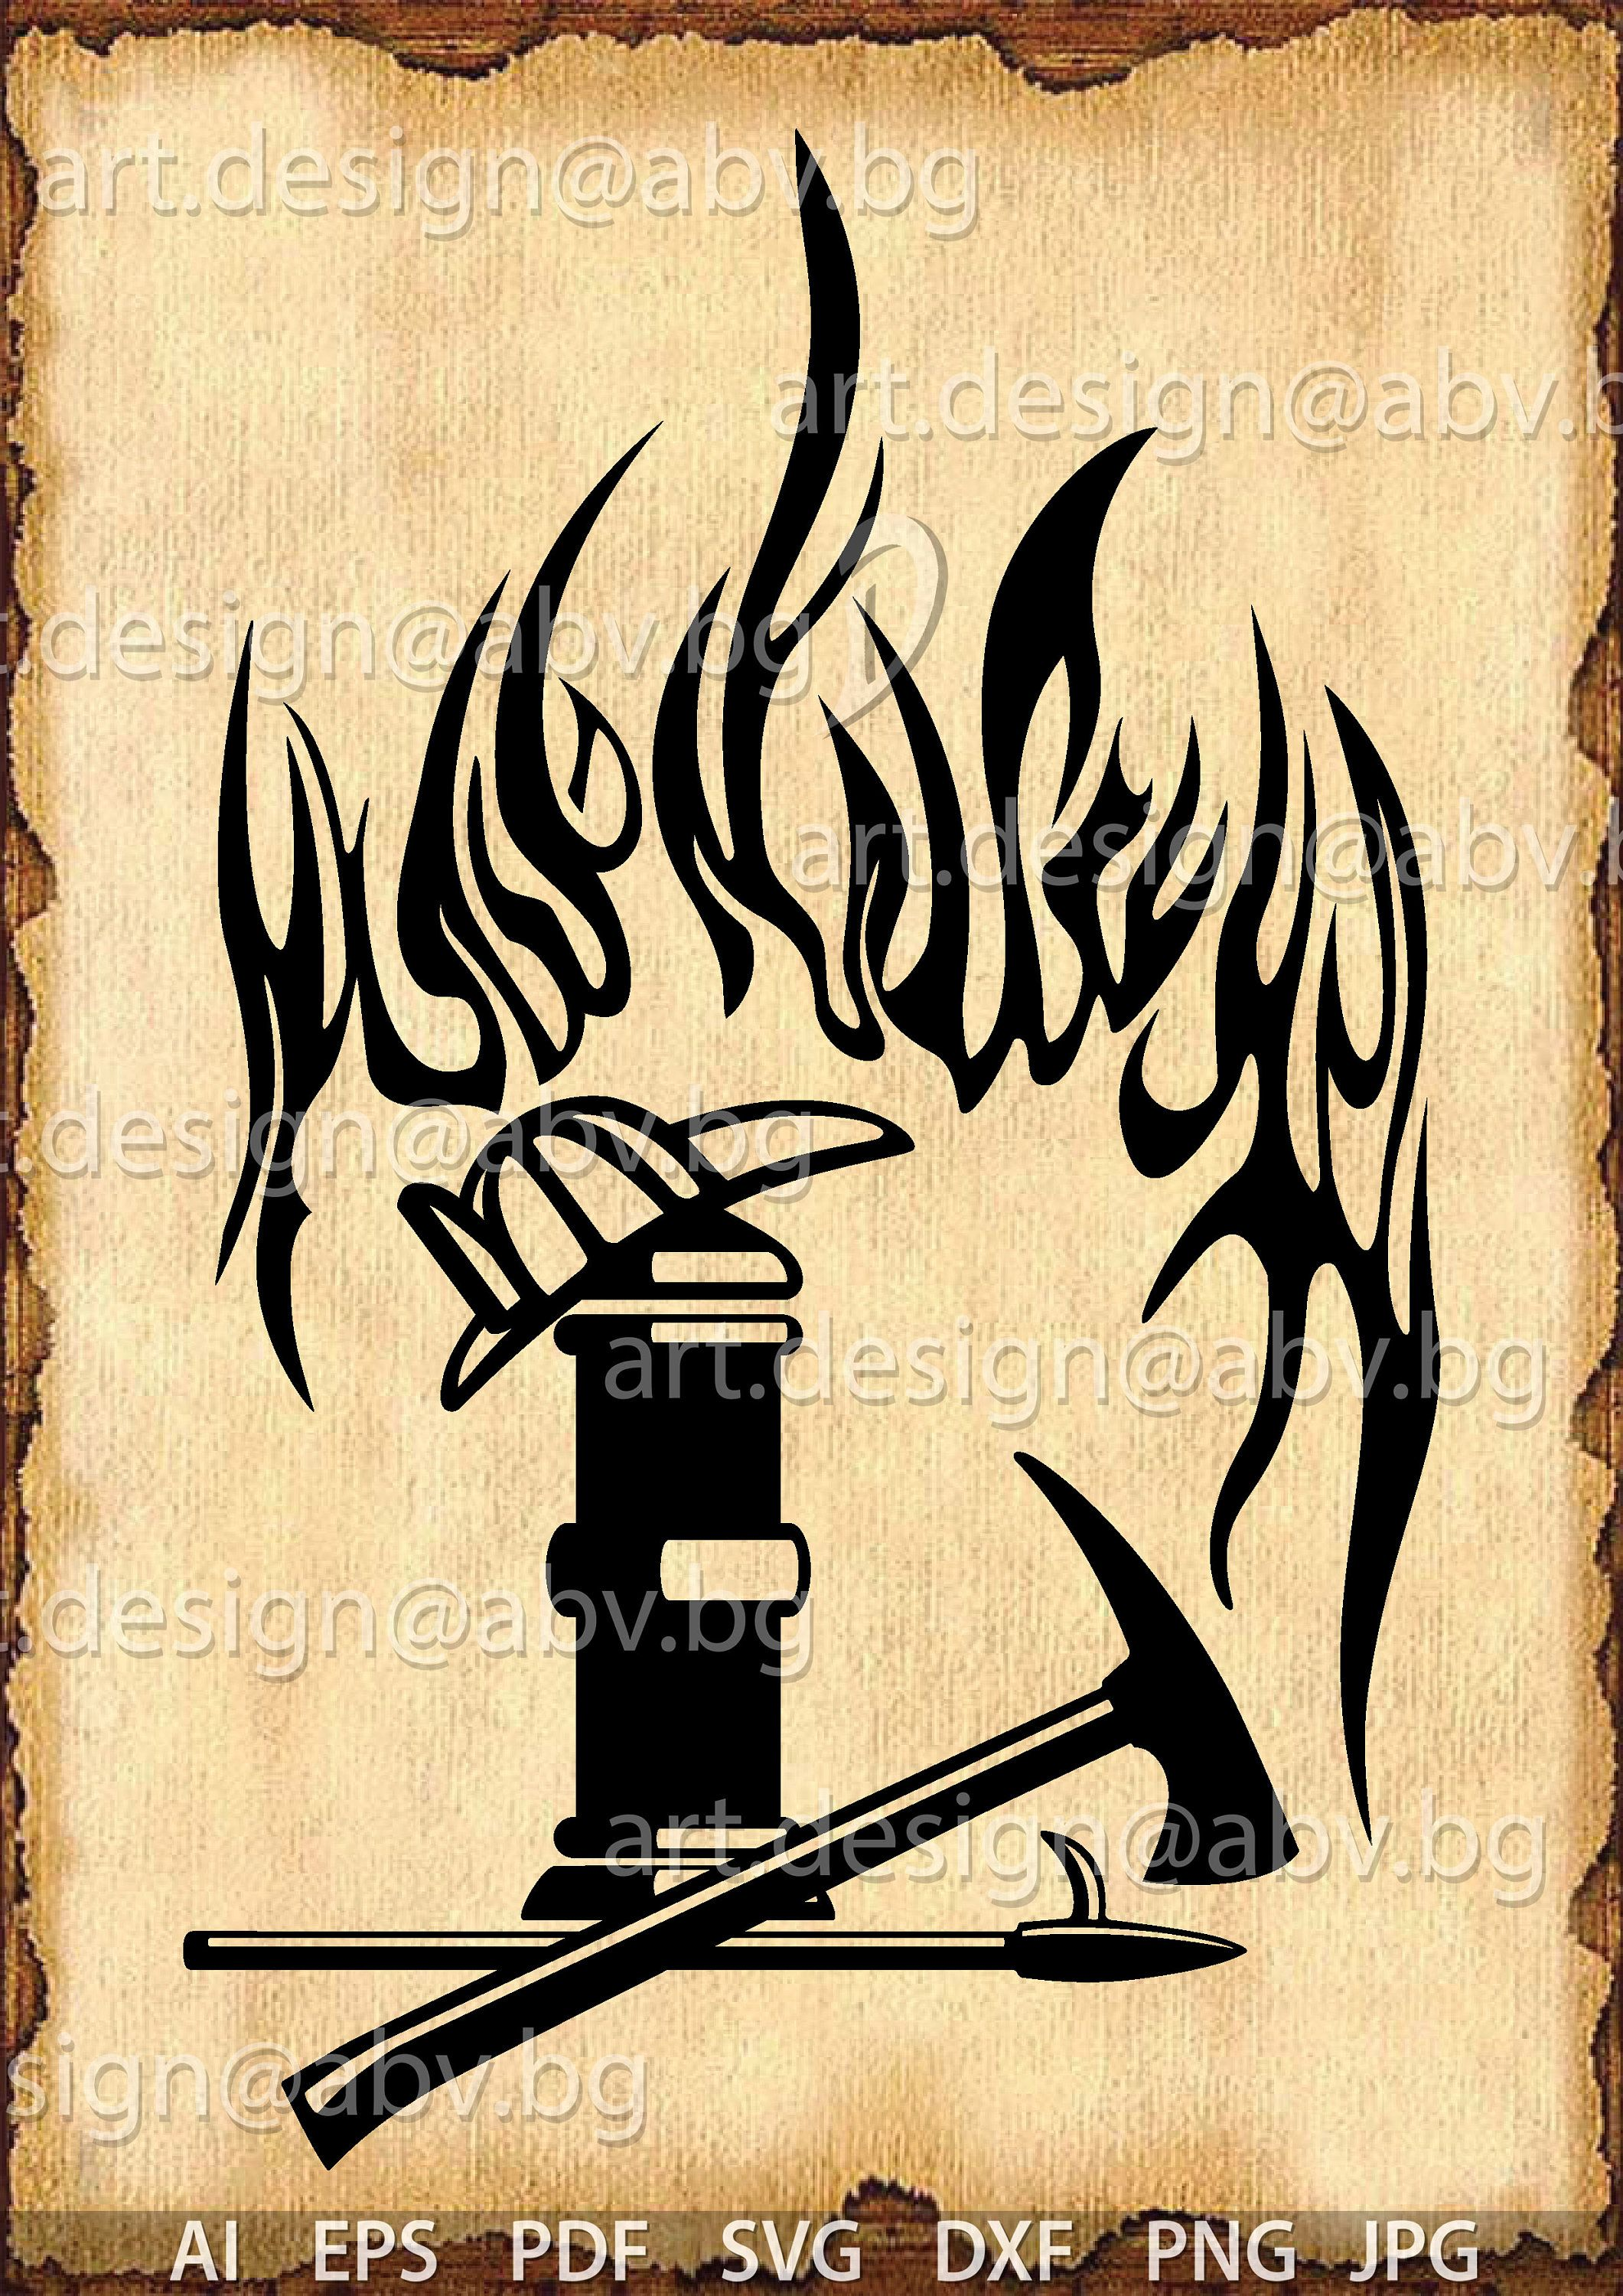 Vector Fire Fighter Fire Ai Eps Pdf Svg Dxf Png Jpg Download Files Digital Graphical Discount Coupons การตกแต งบ าน